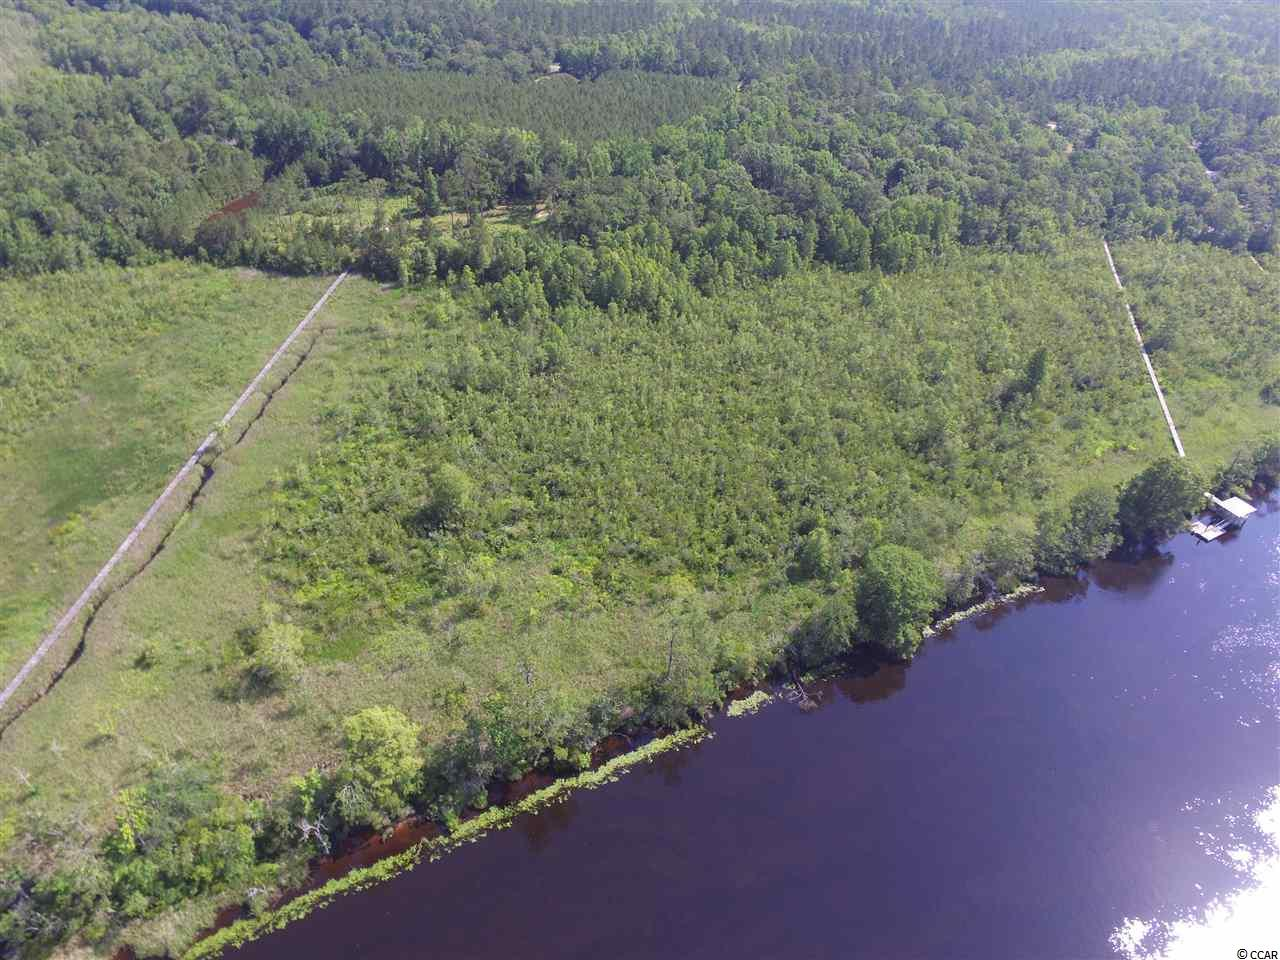 Welcome home to your plantation home-site. Many options abound as you enter this oak filled property. With over 9 acres of uplands and 1000 ft. on the Black River, you have many development opportunities.